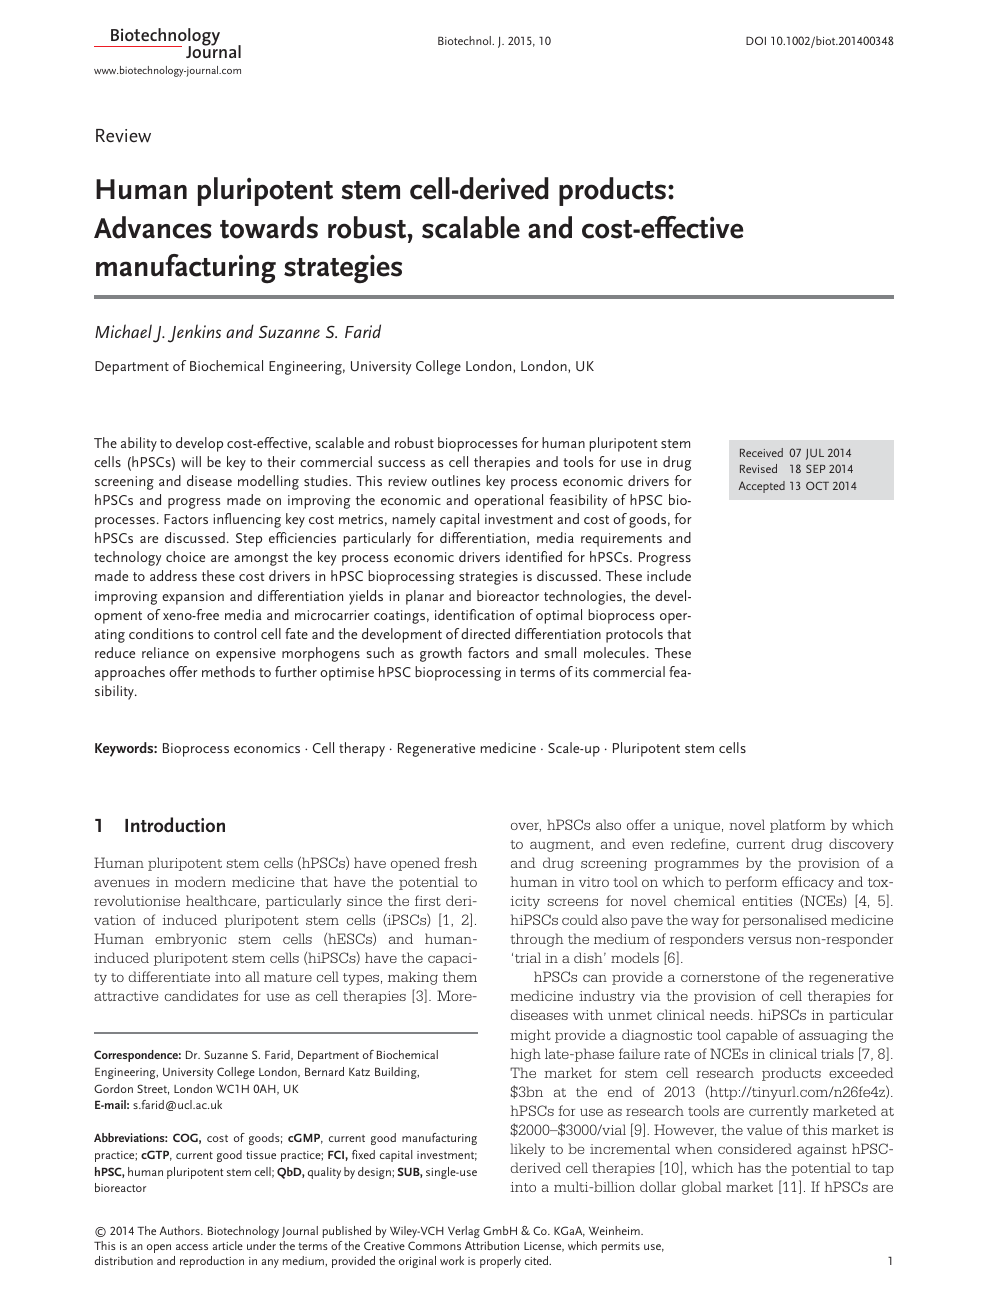 Human Pluripotent Stem Cell Derived Products Advances Towards Robust Scalable And Cost Effective Manufacturing Strategies Topic Of Research Paper In Biological Sciences Download Scholarly Article Pdf And Read For Free On Cyberleninka Open